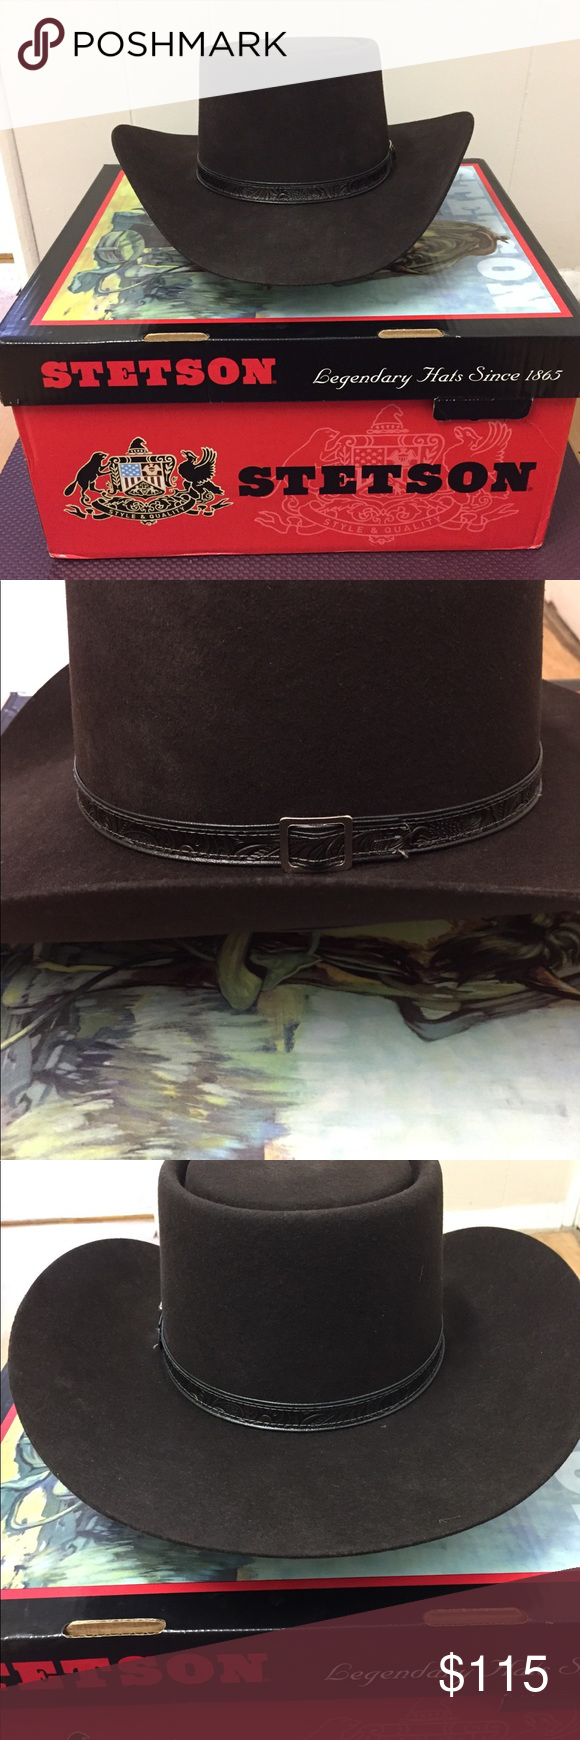 86e1b0e06ae Size 7 3 8. Like New!! This is a Stetson Revenger hat size 7 3 8. The hat  is XXXX buffalo hide. The color is a chocolate brown and in brand ...